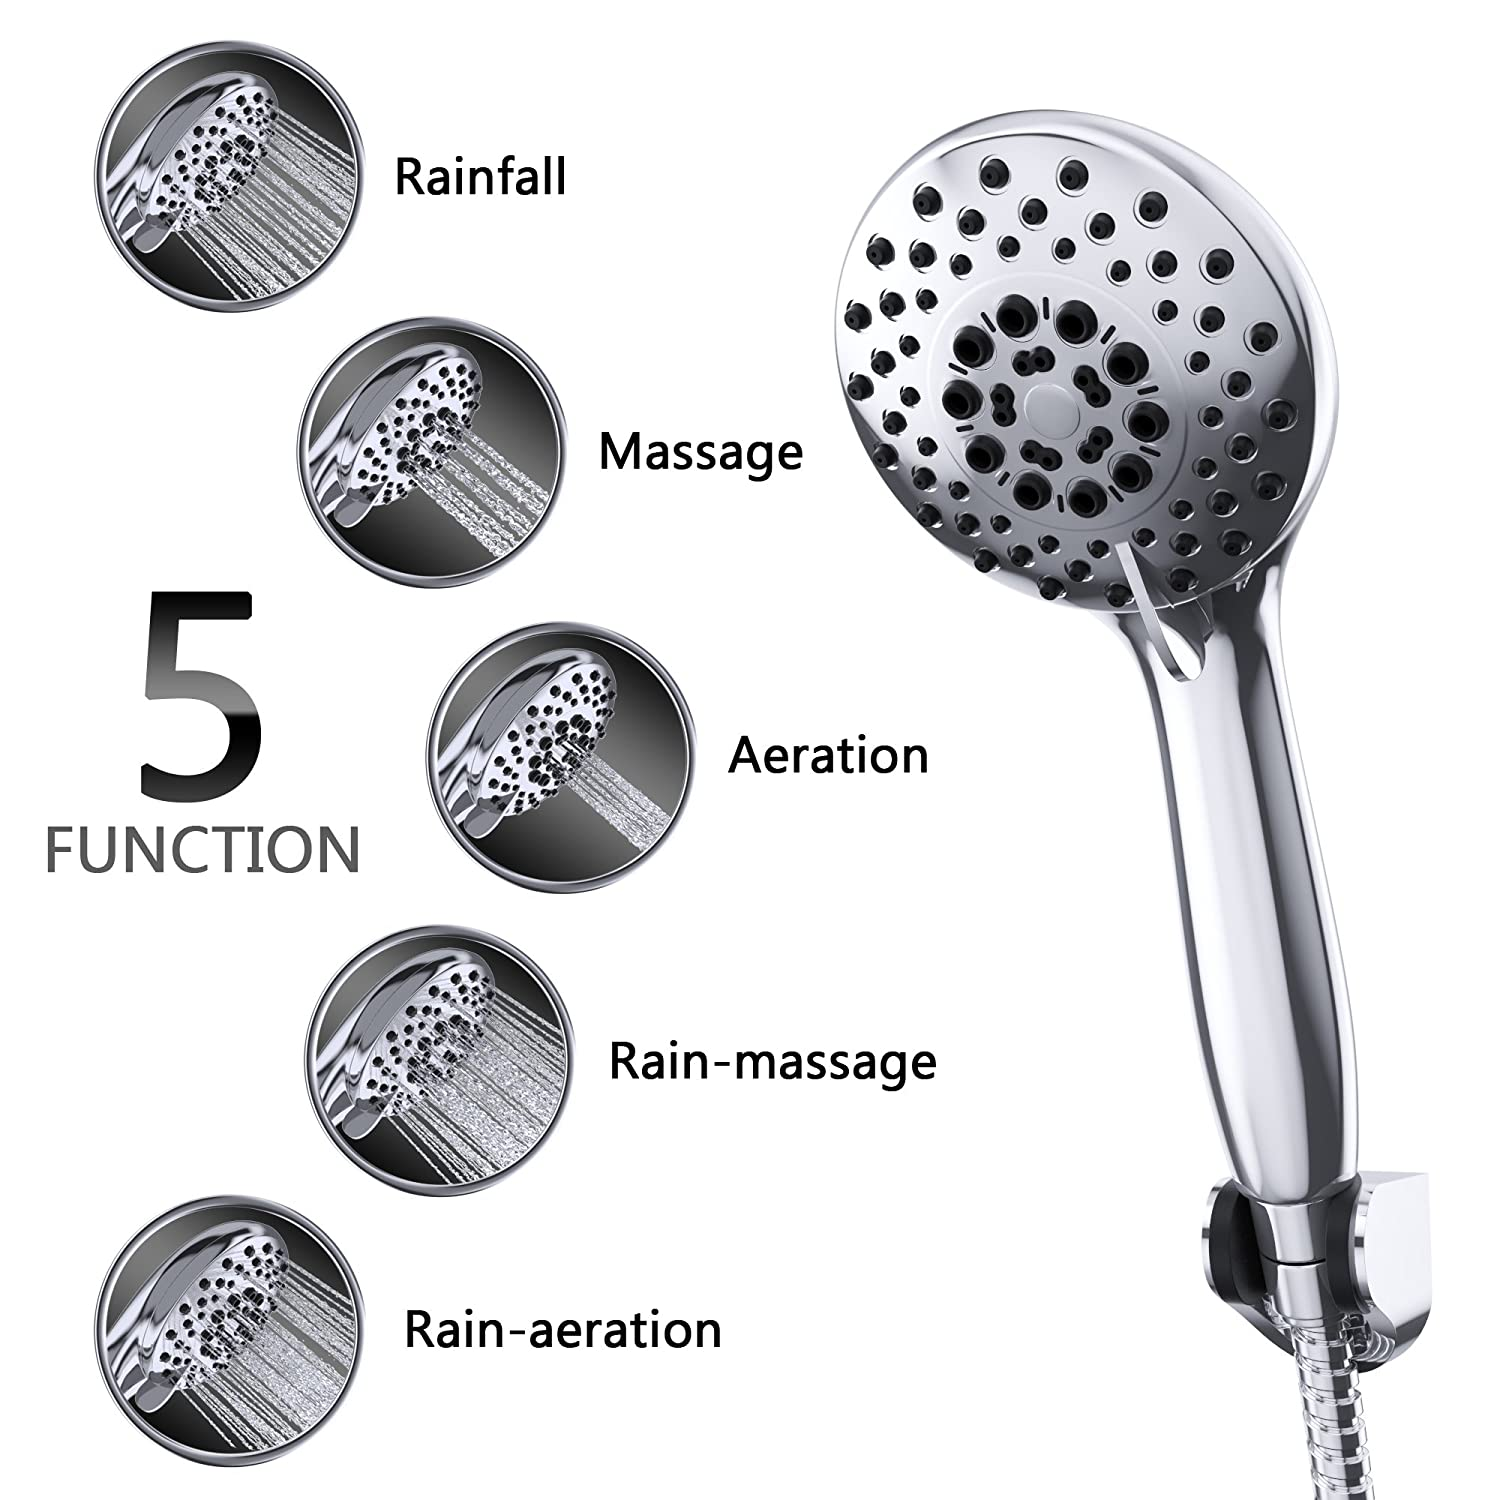 Exceptionnel Luxury Handheld Shower Heads   Rain Shower Head By Smartier   High Pressure  U0026 Premium Comfort   Premium Chrome   Best Rain Spray Shower Head   5 Foot  Hose, ...